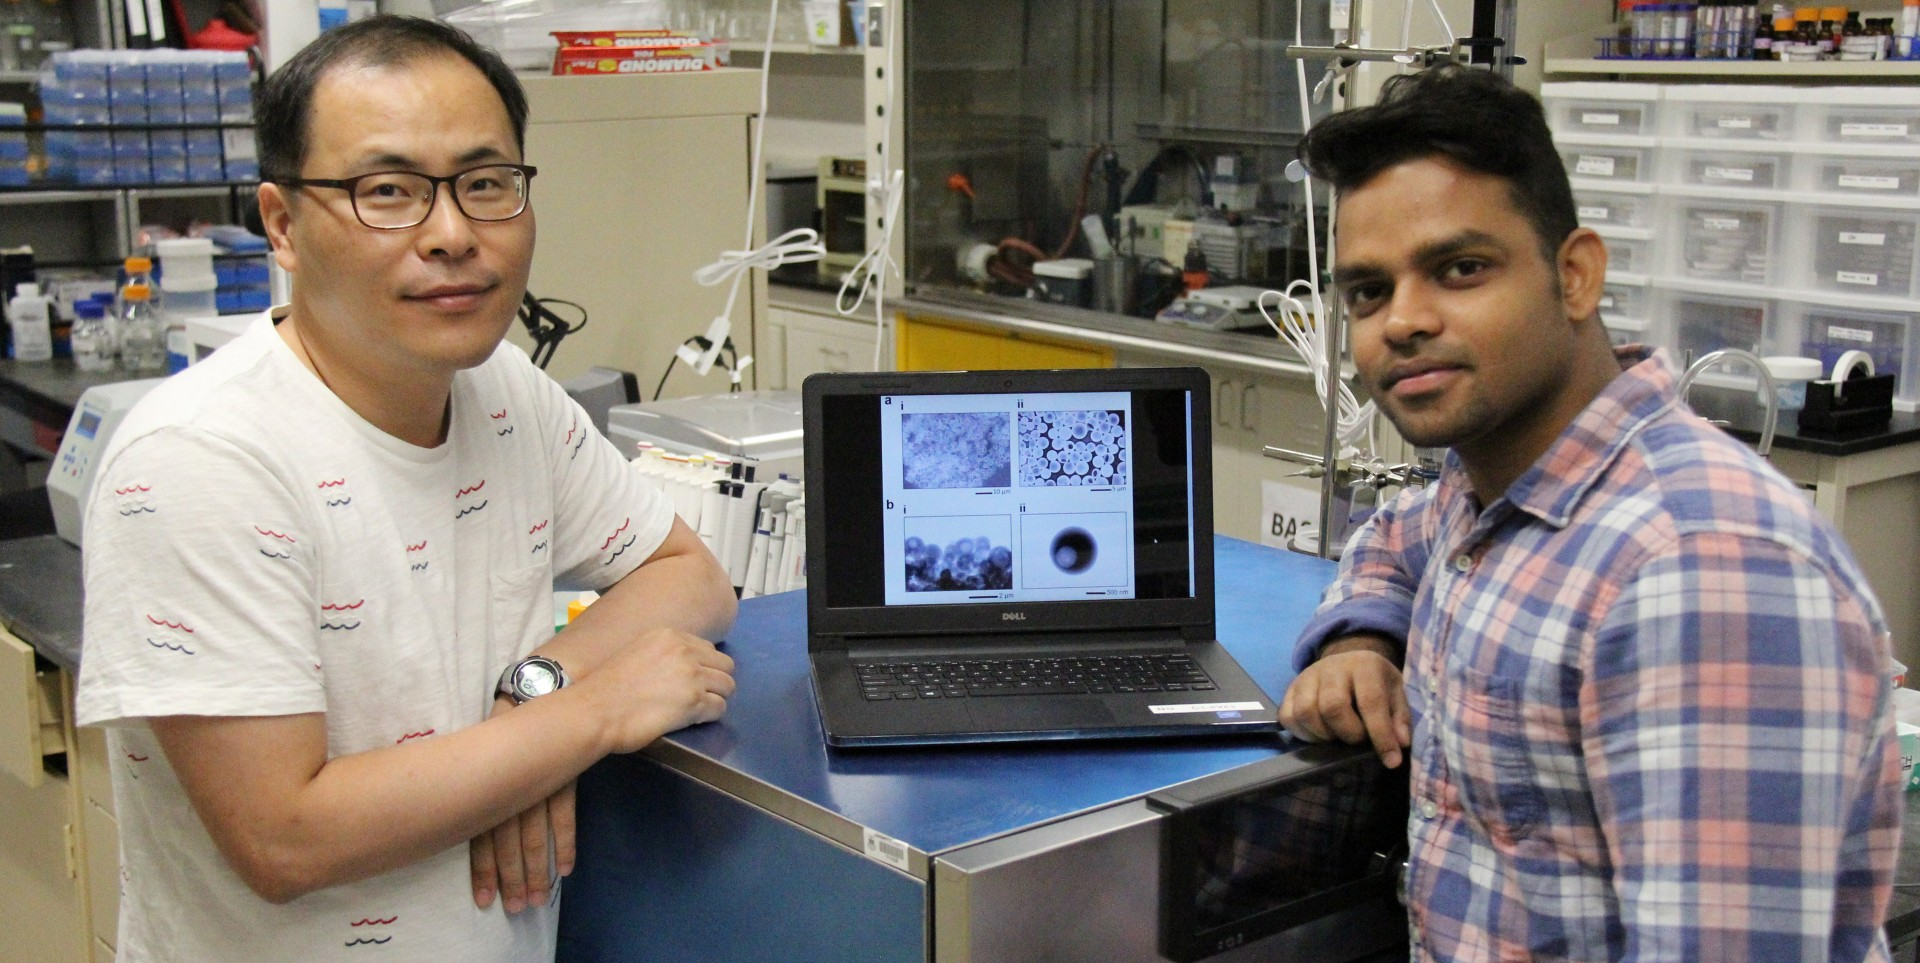 Chemical and materials engineering professor Hyo-Jick Choi and research associate Ankit Kumar were part of the team that has developed an oral delivery system for vaccines. (Photo by Richard Cairney)